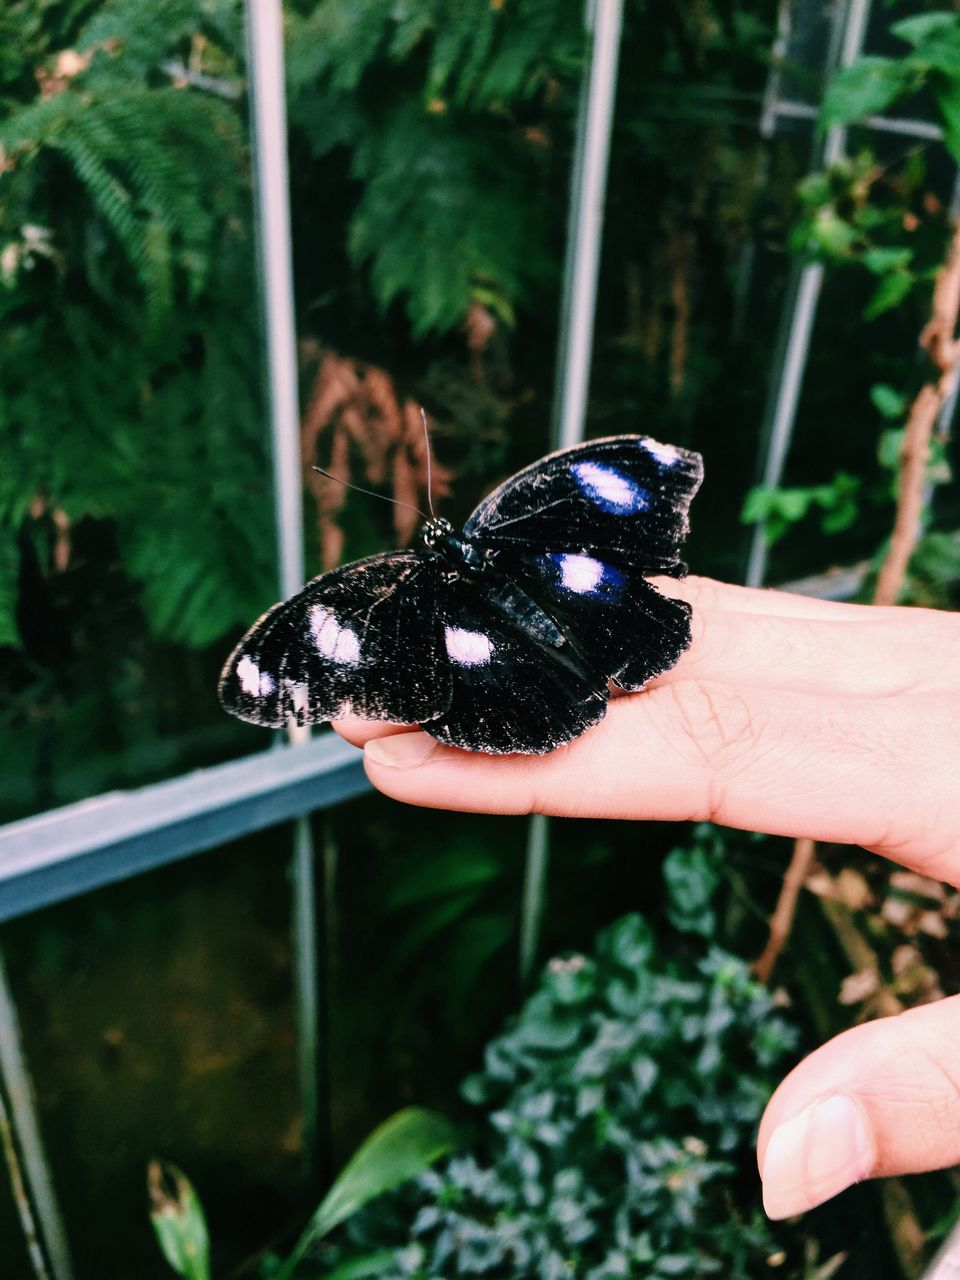 human hand, animal themes, one animal, animals in the wild, real people, animal wildlife, one person, human body part, outdoors, butterfly - insect, insect, day, holding, close-up, plant, leaf, nature, fragility, people